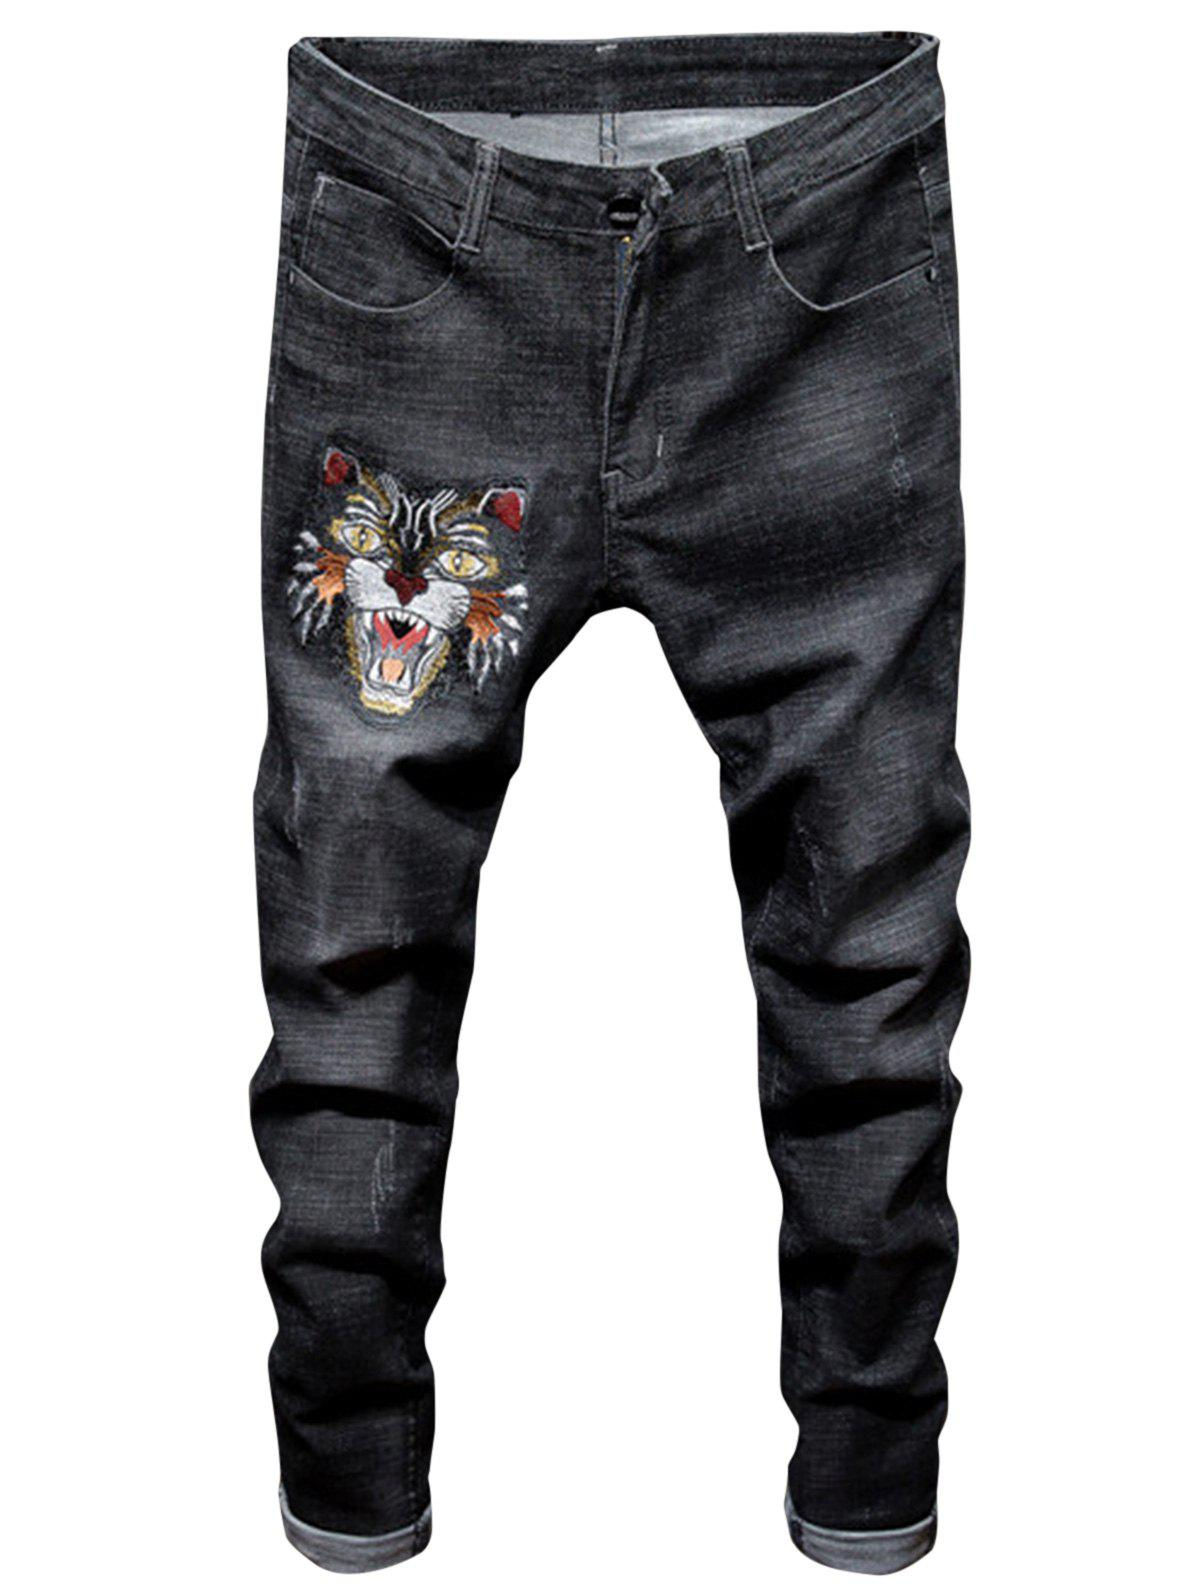 Unique Tiger Embroidered Ripped Jeans